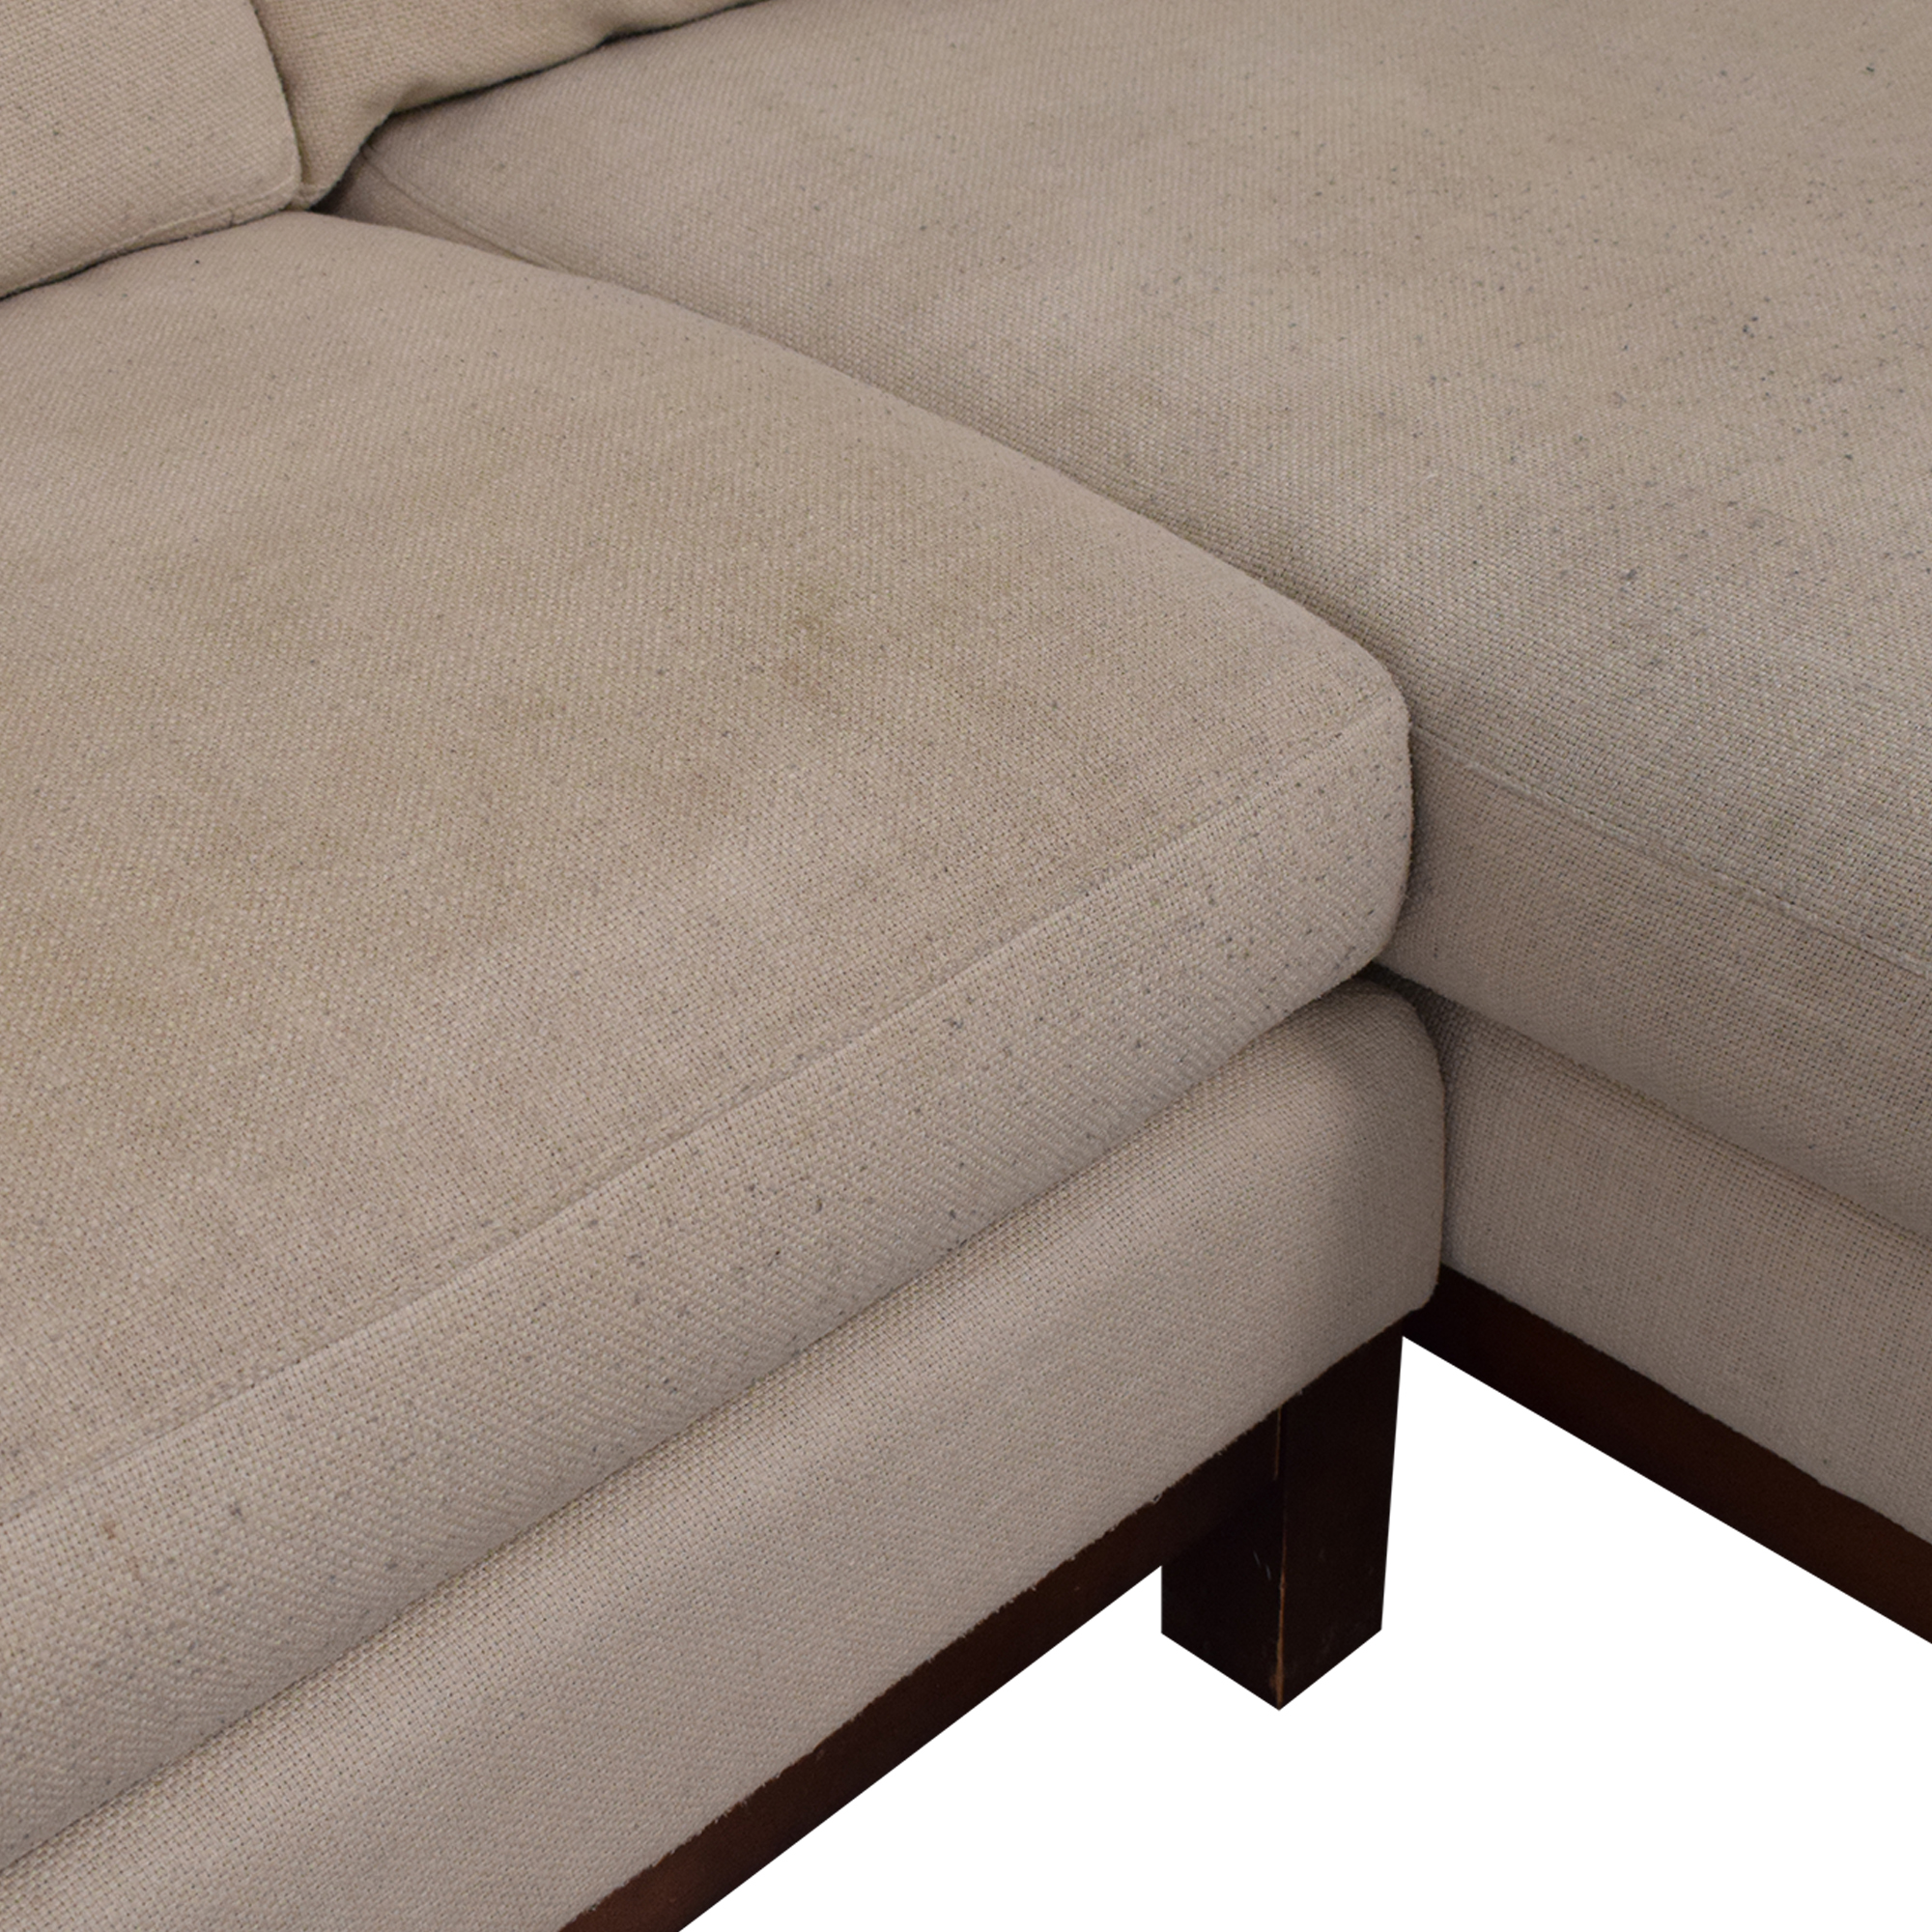 ABC Carpet & Home ABC Carpet & Home Cobble Hill Sectional Sofa Sectionals